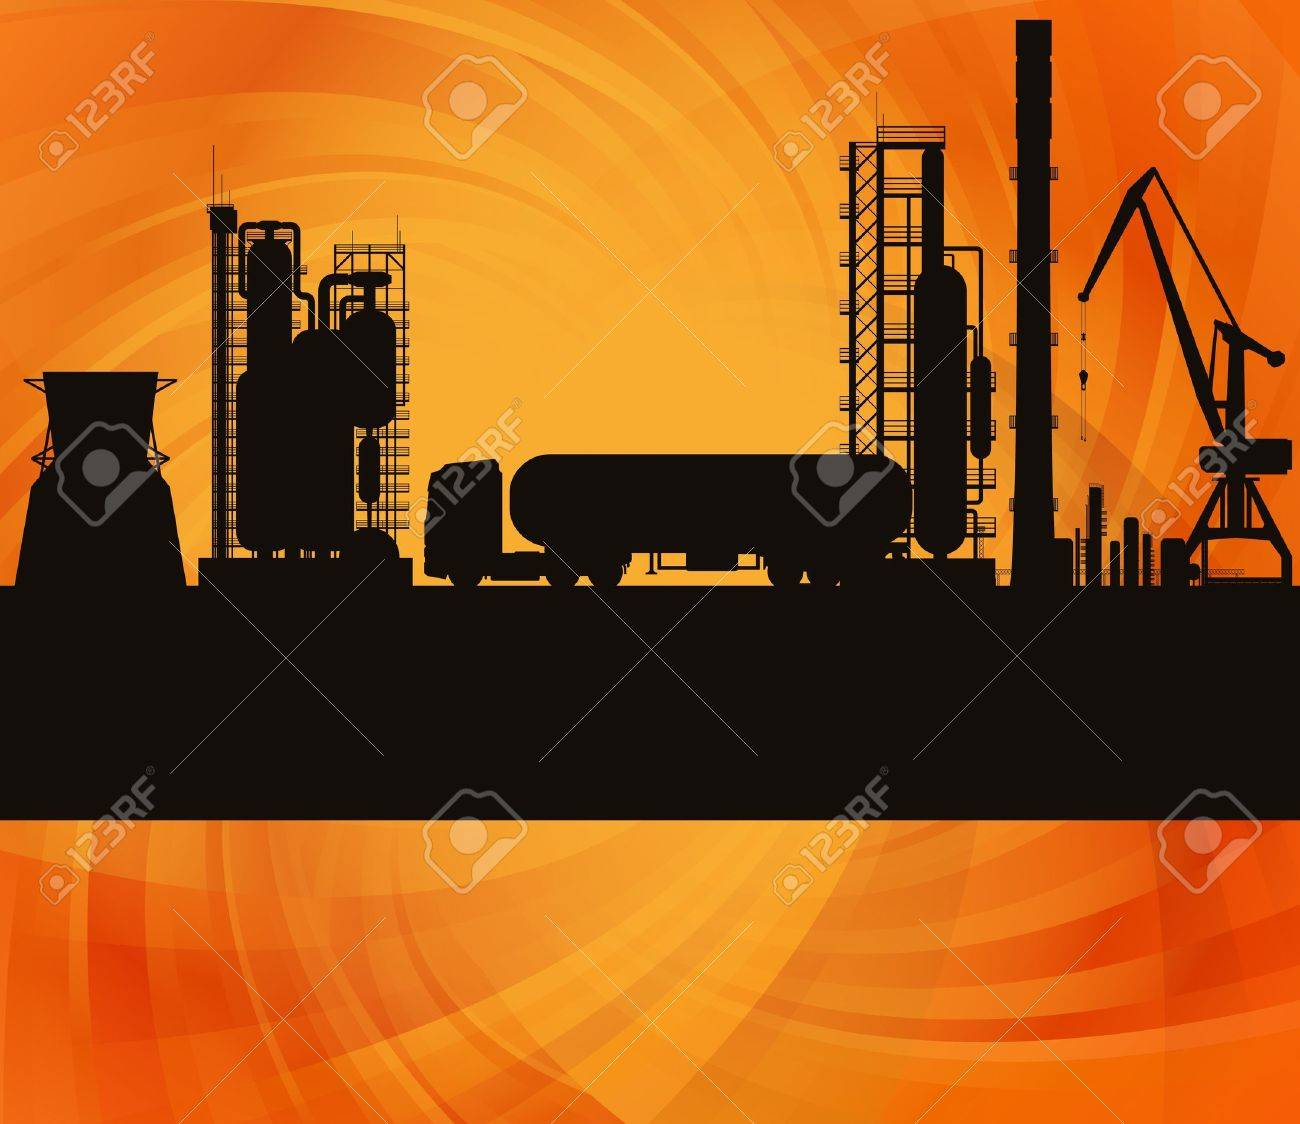 Oil refinery station and track background illustration Stock Vector - 13412715